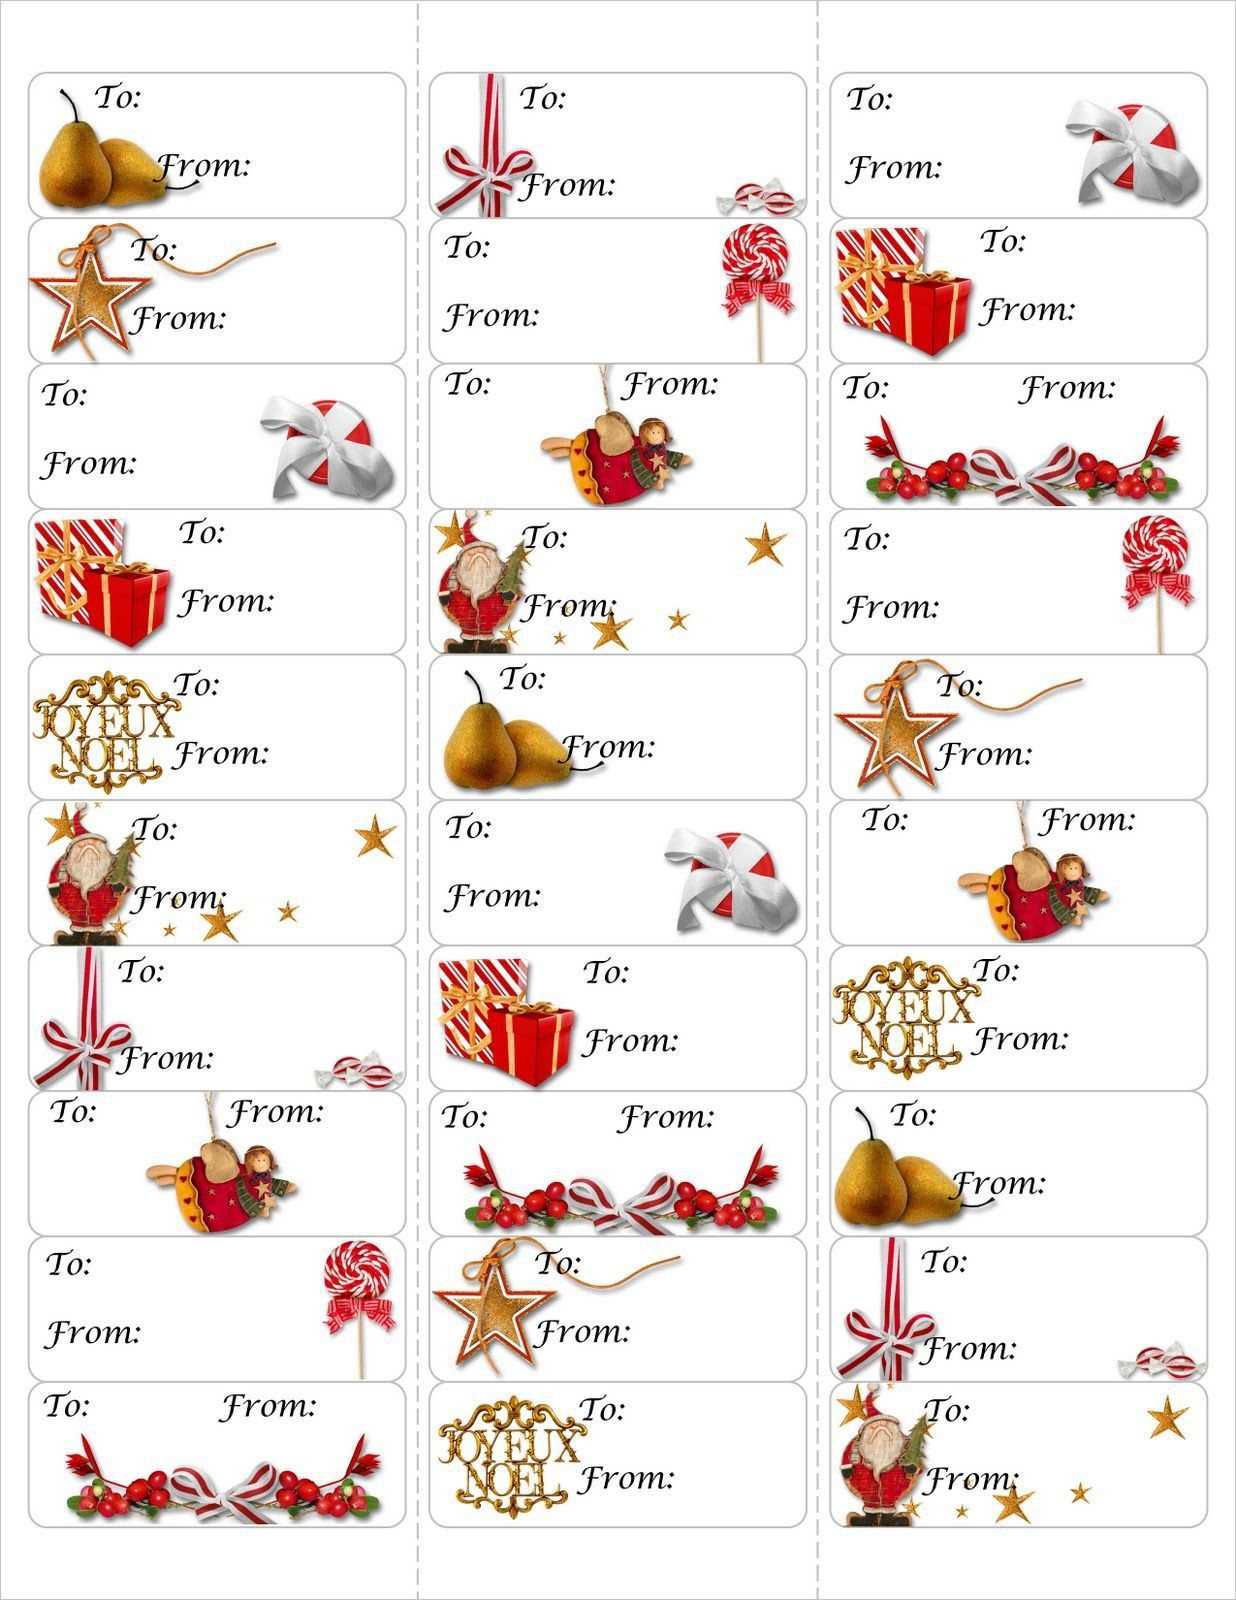 007 Phenomenal Free Christma Addres Label Template Avery 5160 Concept Full